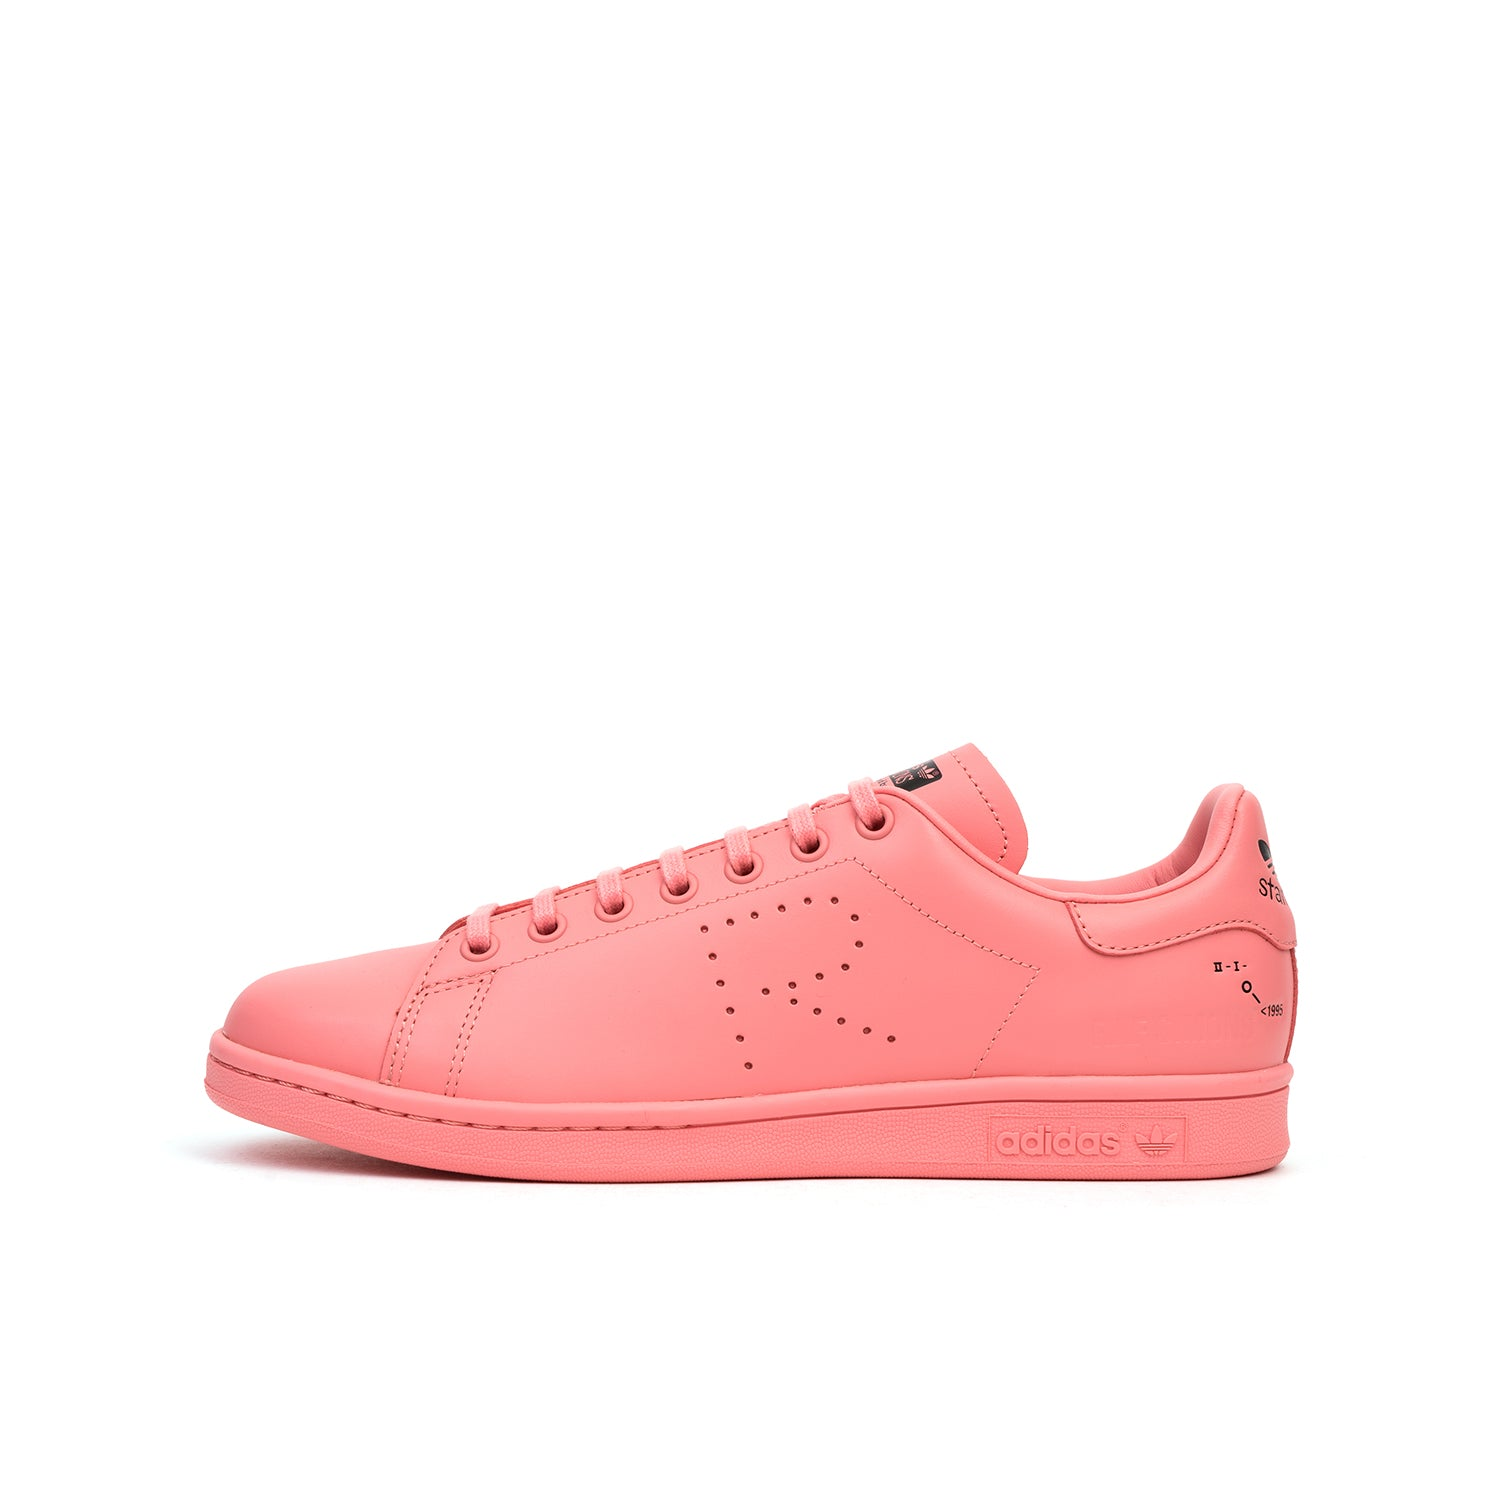 4d2b3ce474ad adidas x Raf Simons RS Stan Smith Tactile Rose – Concrete